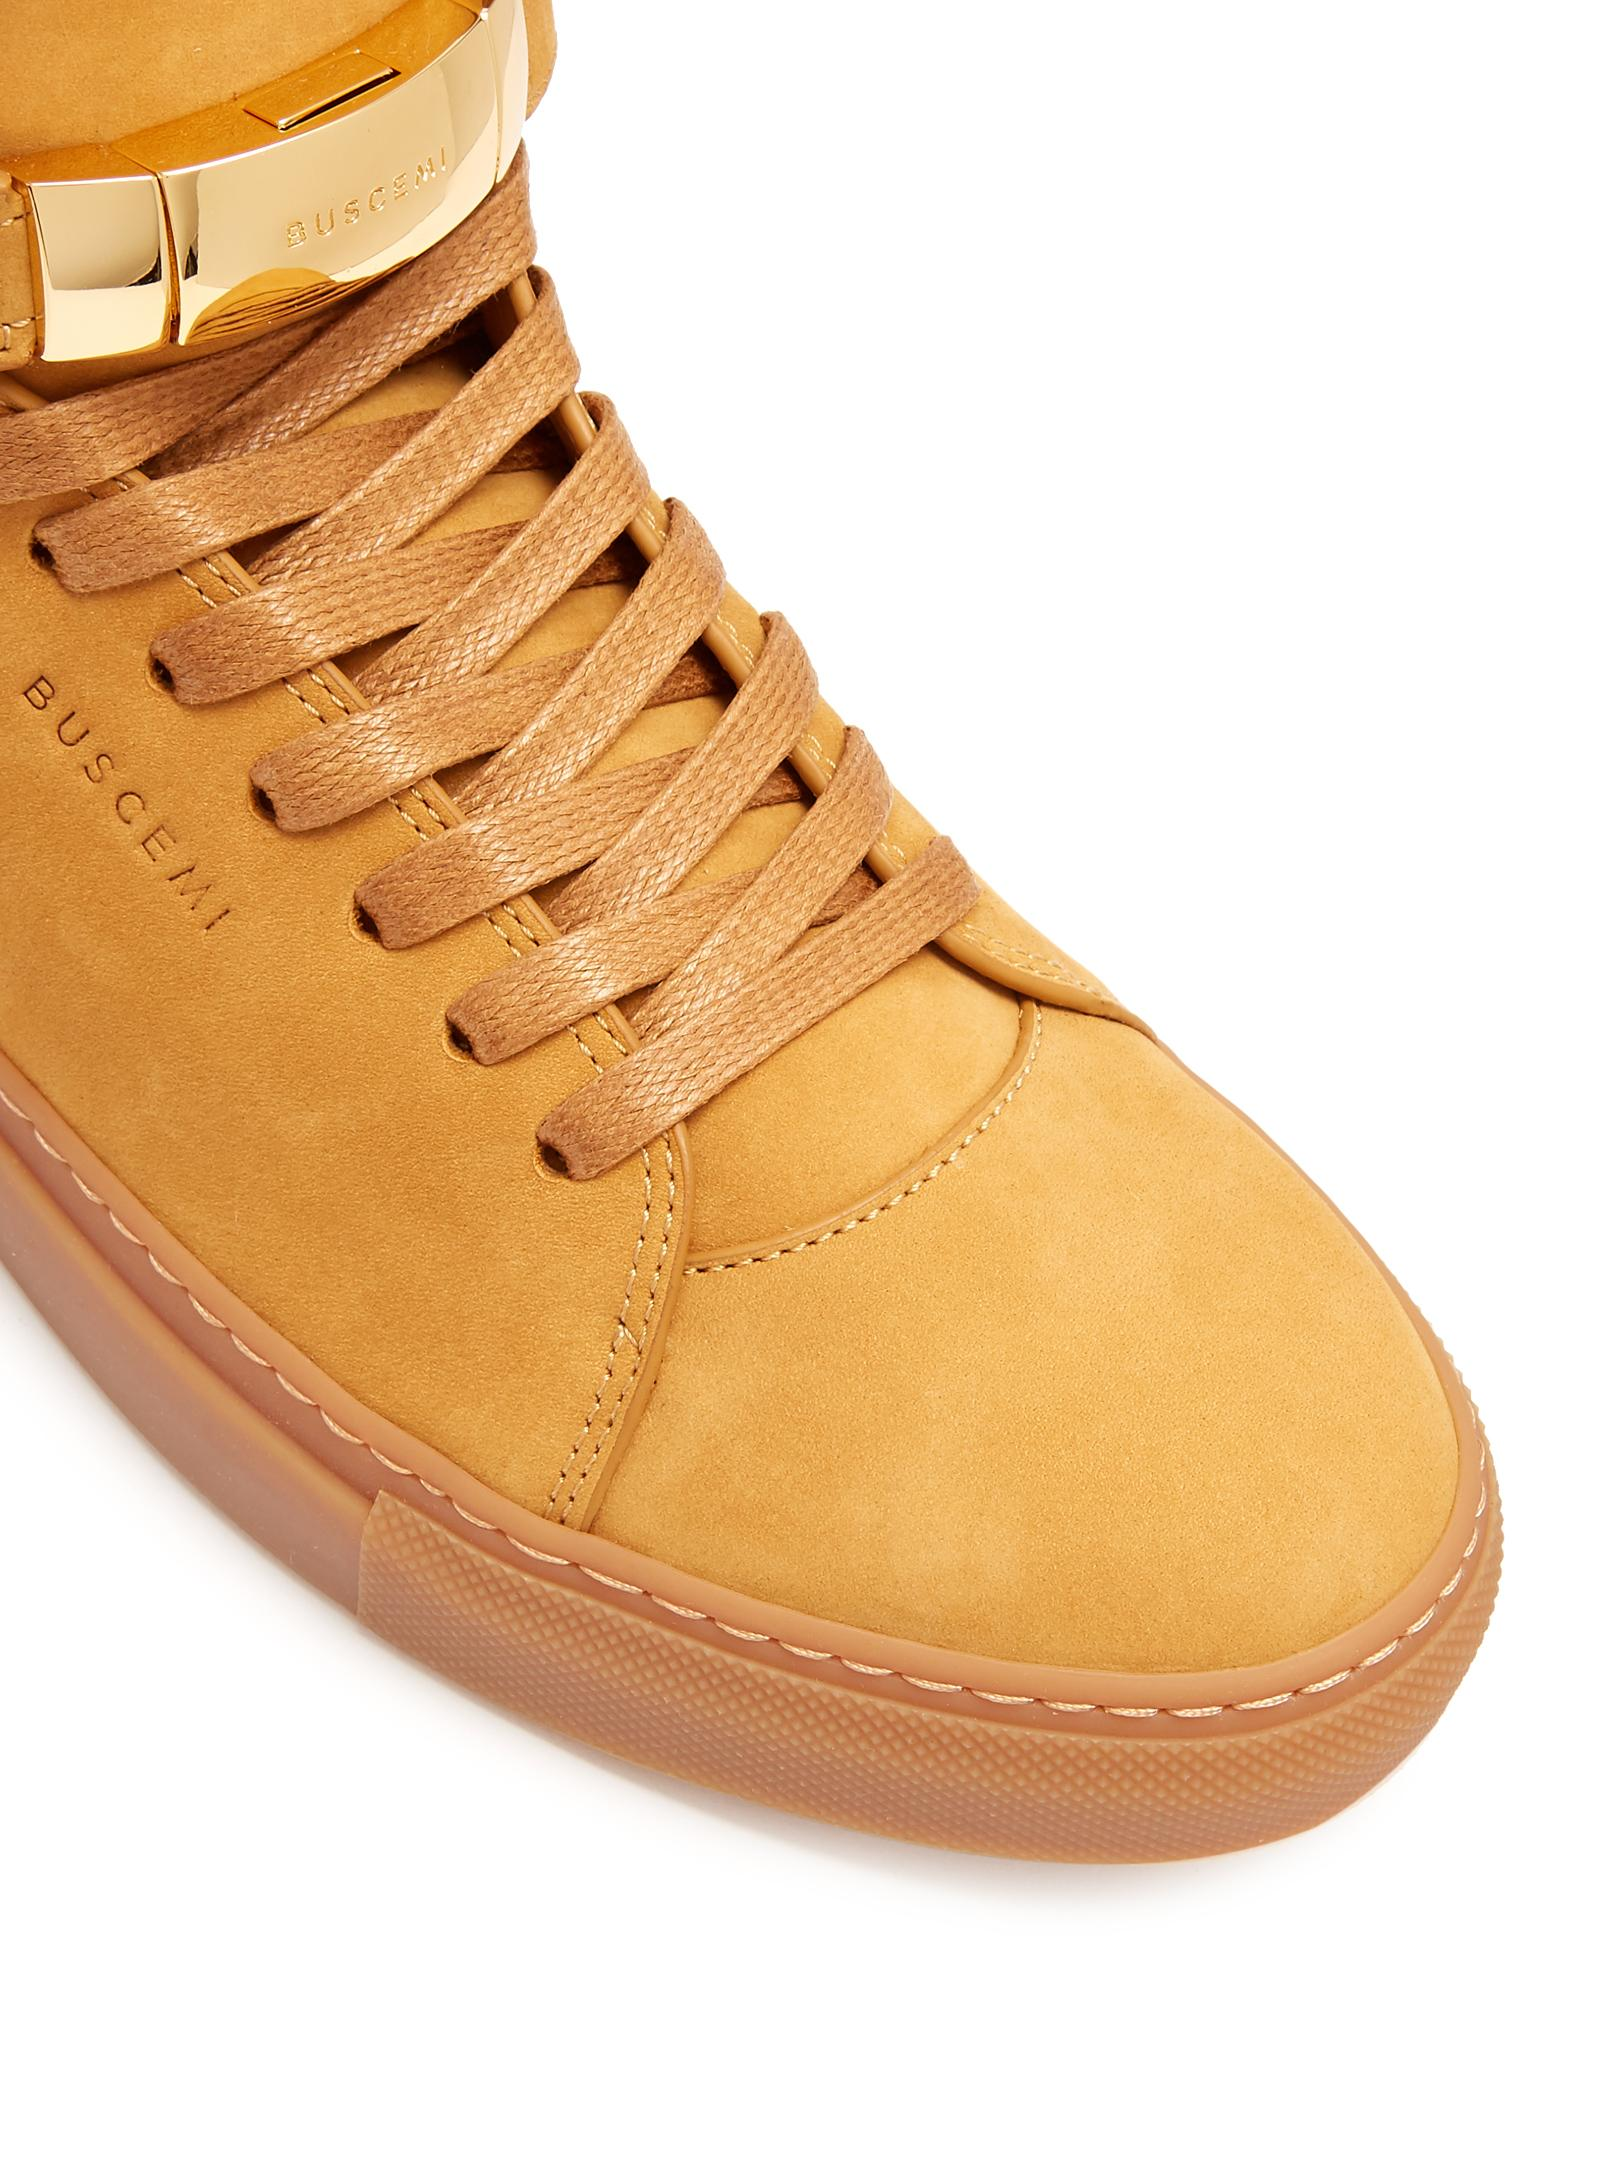 Buscemi Core Clip Suede High-top Suede Sneakers for Men